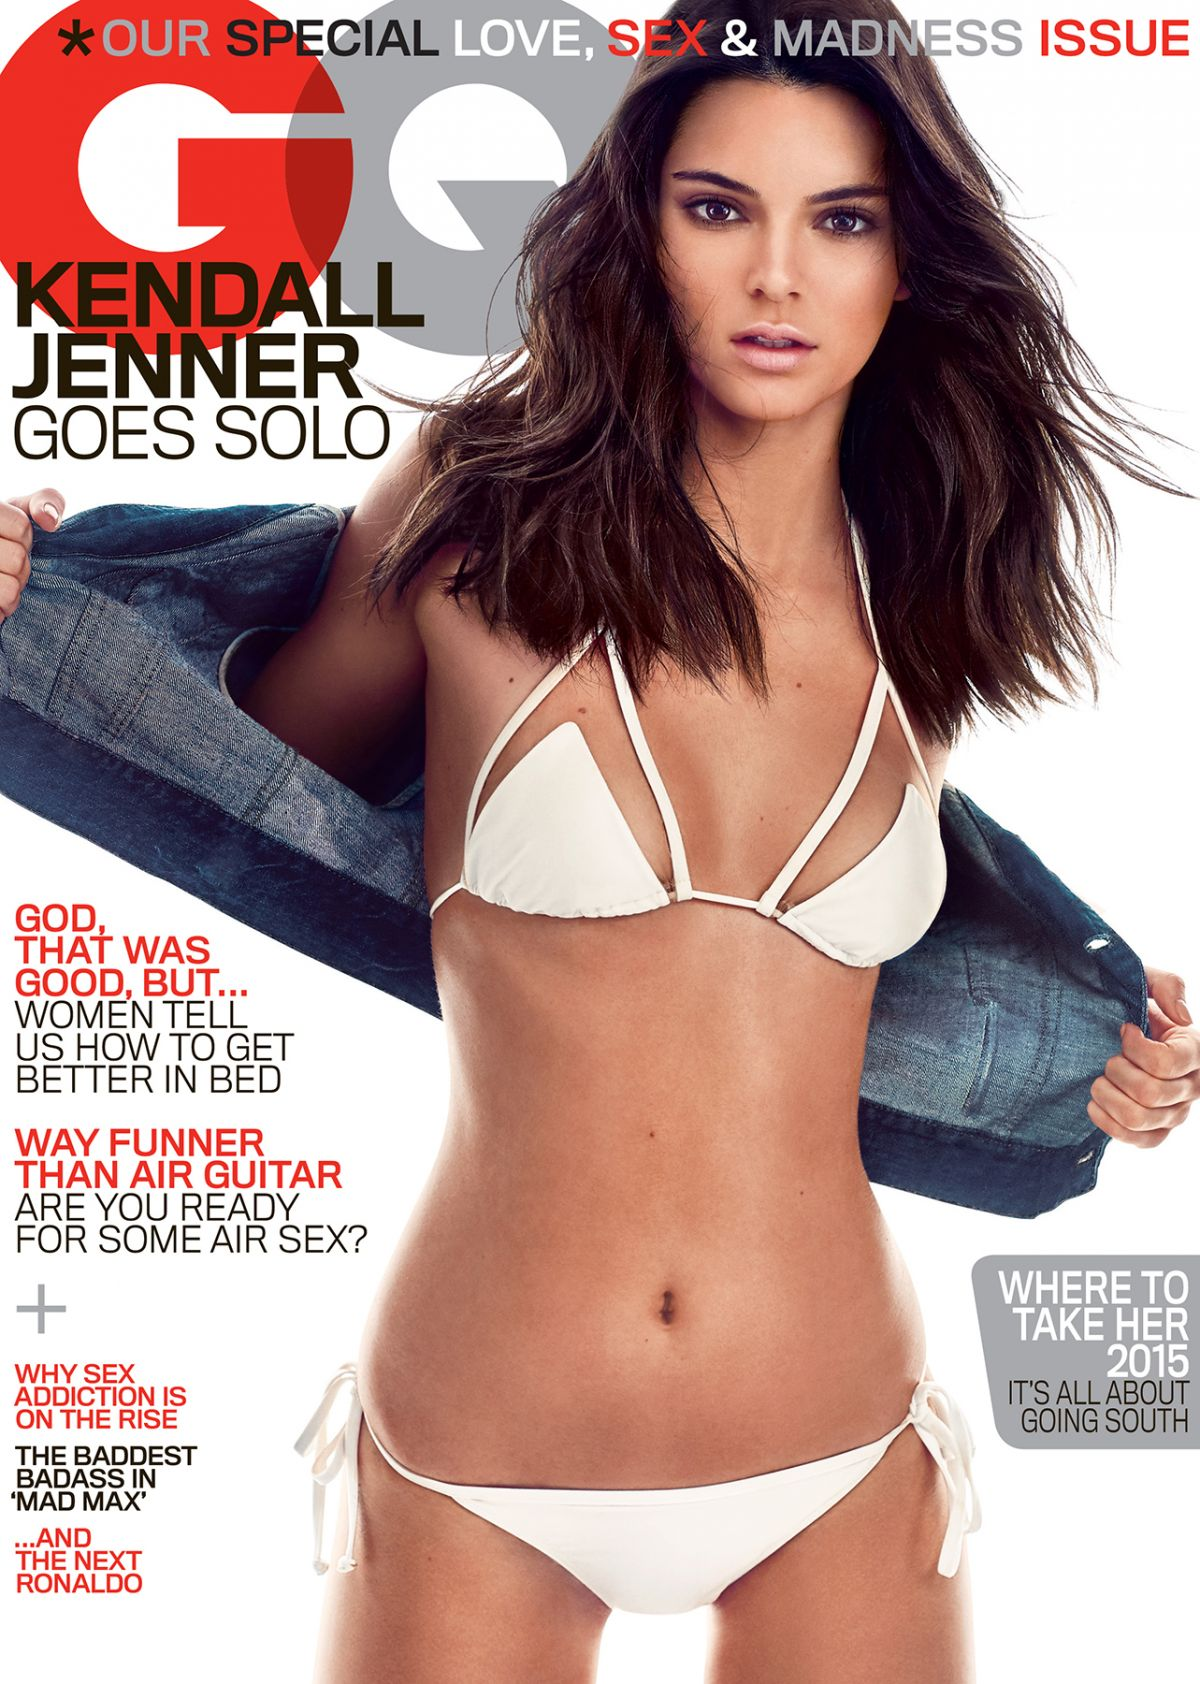 Gq Magazine The Secrets Of R Kelly: KENDALL JENNER In GQ Magazine, May 2015 Issue